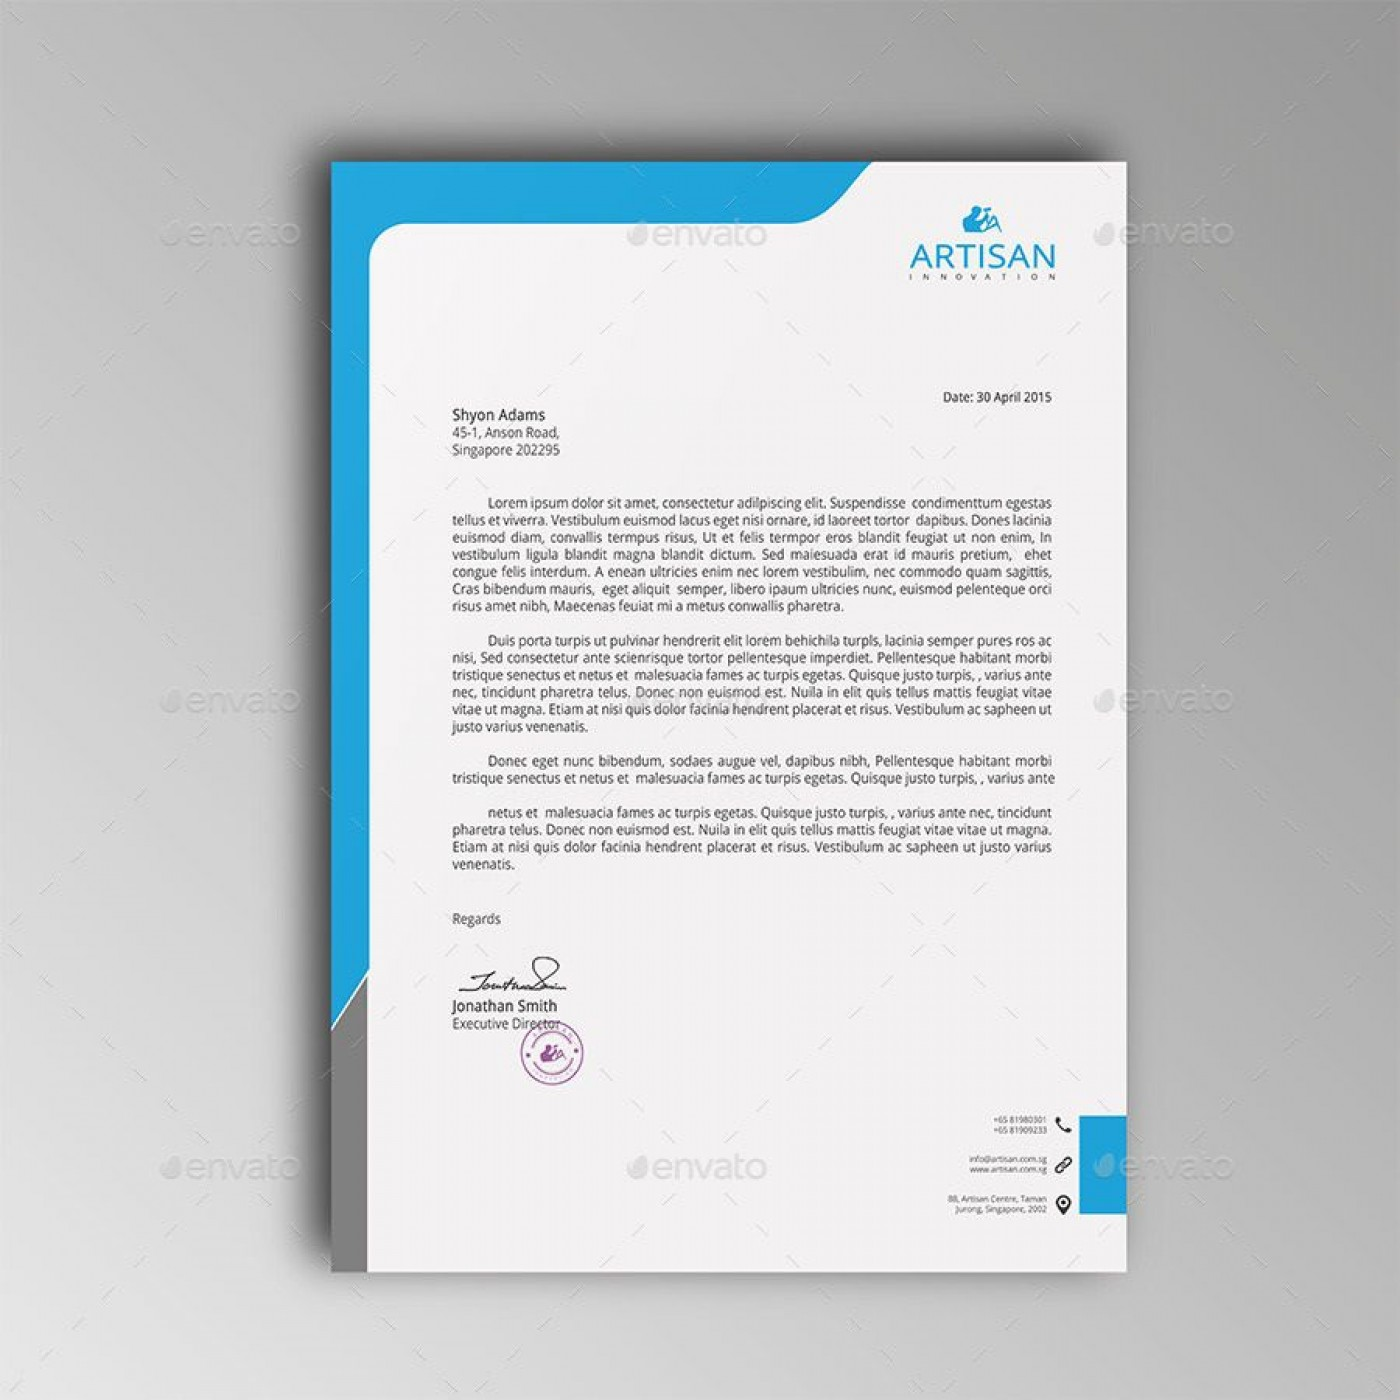 007 Imposing Letterhead Template Free Download Ai High Definition  File1400